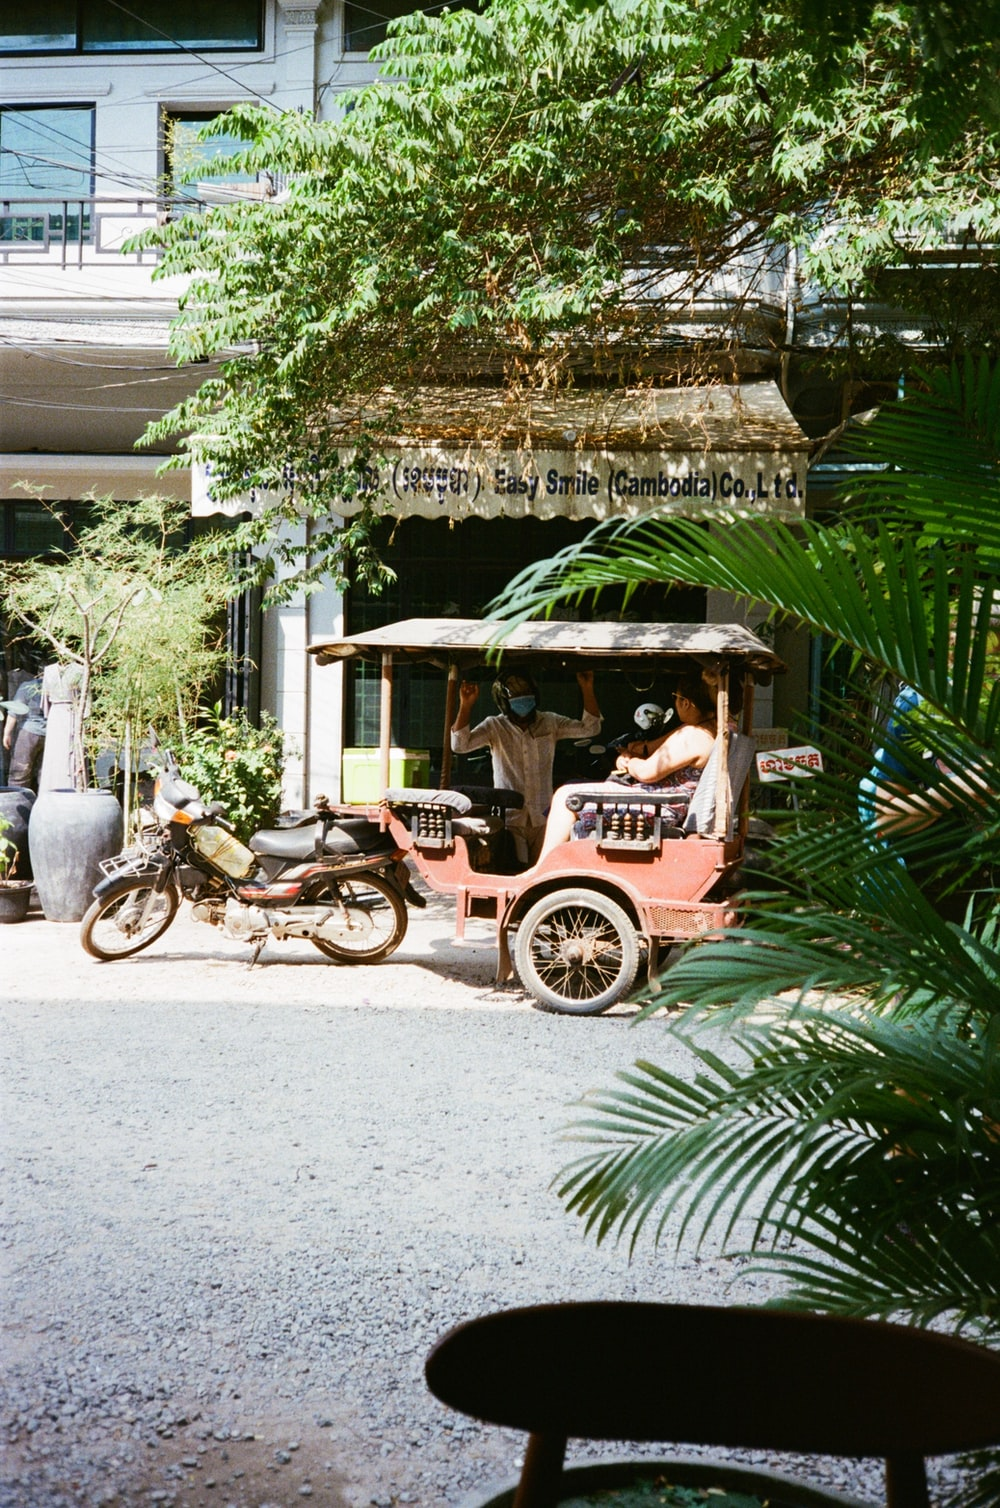 brown and black wooden carriage in front of green palm tree during daytime